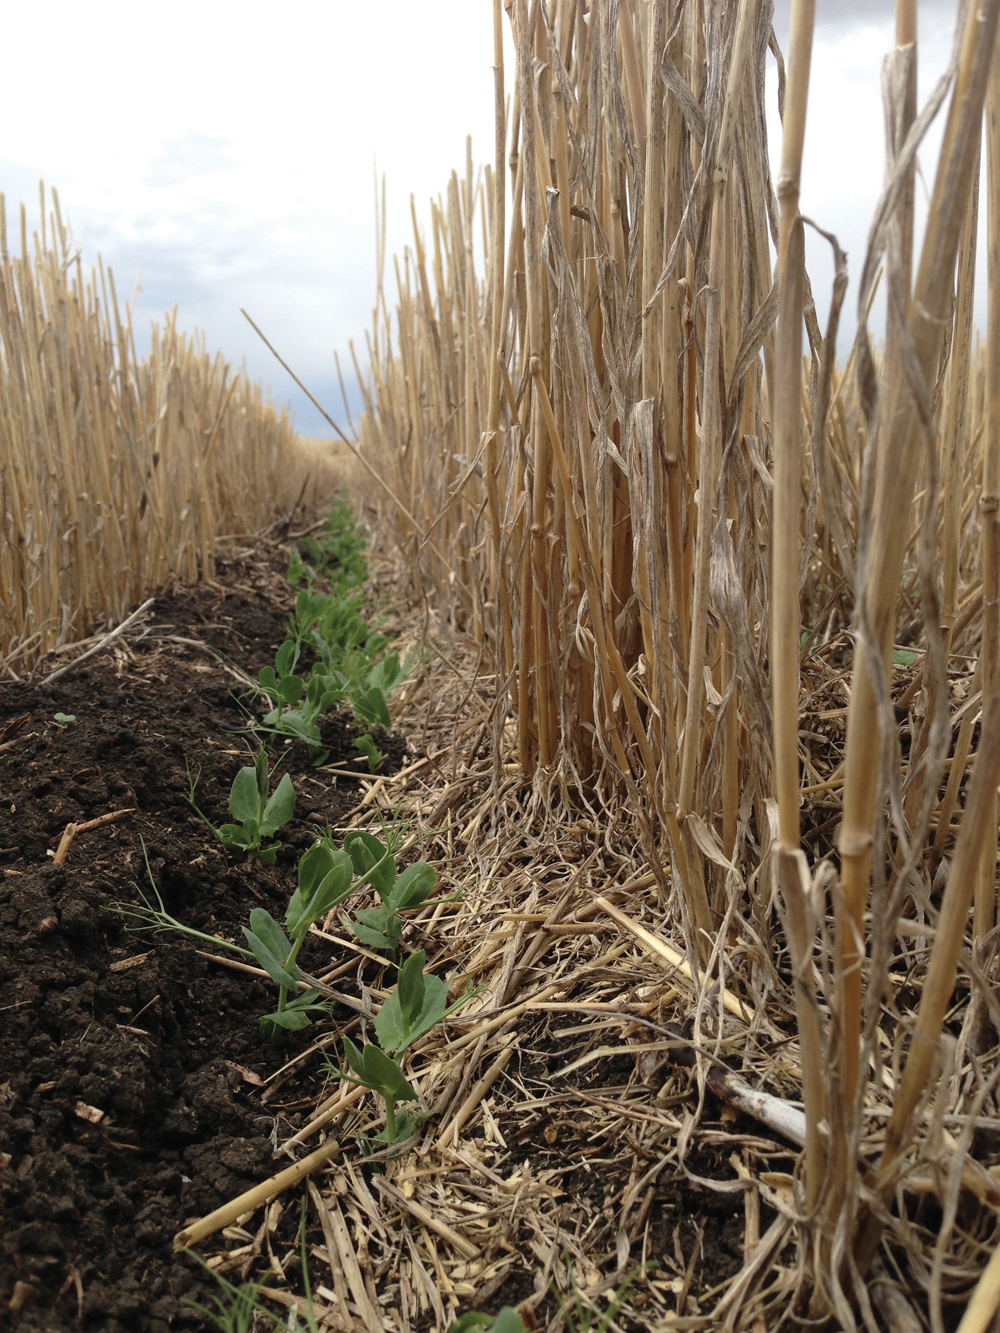 These field peas were seeded using the CTF system tucked in close to the standing stubble of the previous crop. The pea crop is able to use any residual nutrients from the previous crop and the standing cereal stubble provides protection and may help to support the pea crop as it matures.